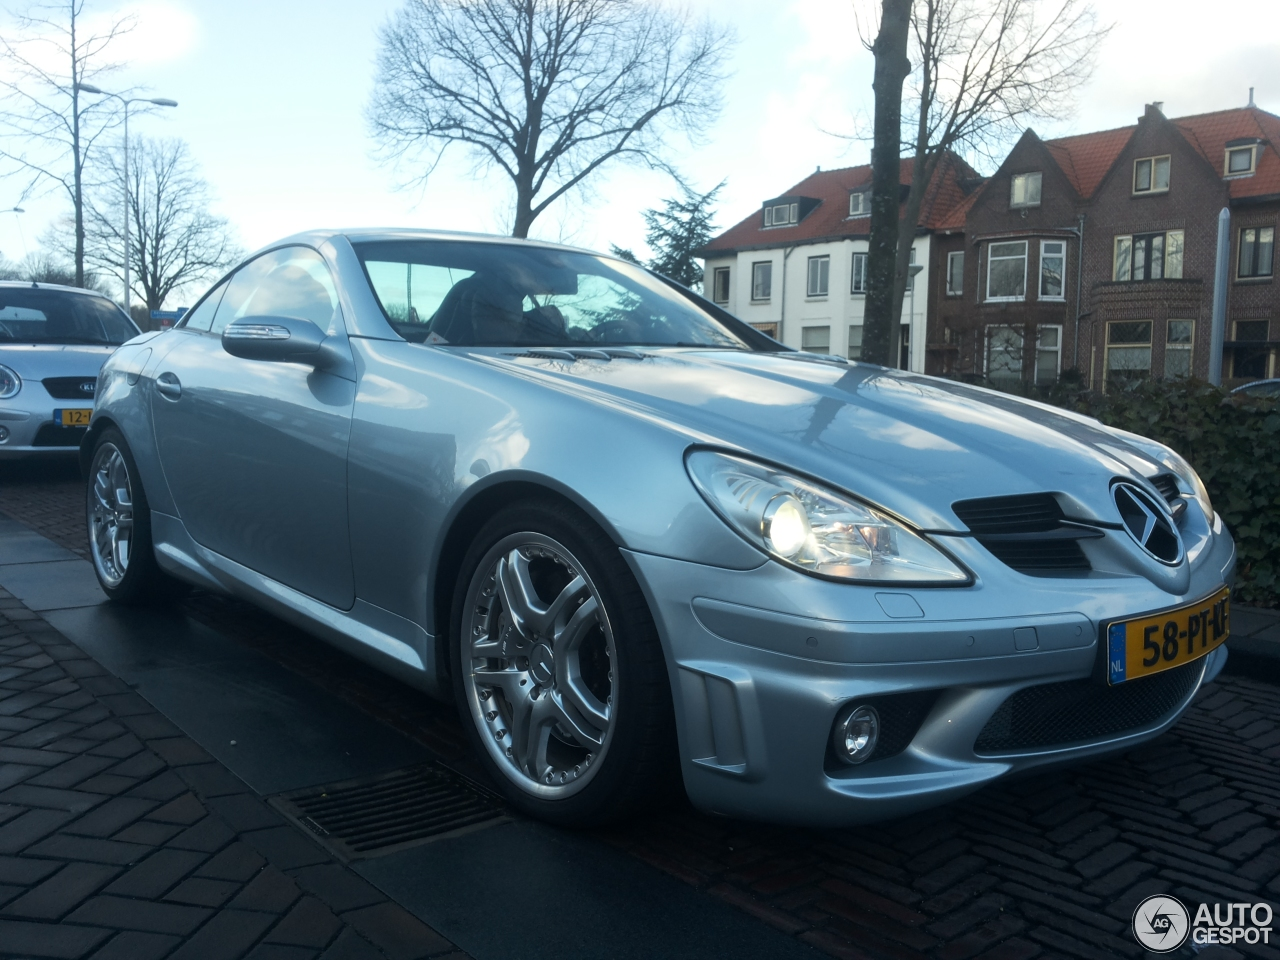 mercedes benz slk 55 amg r171 10 februar 2015 autogespot. Black Bedroom Furniture Sets. Home Design Ideas